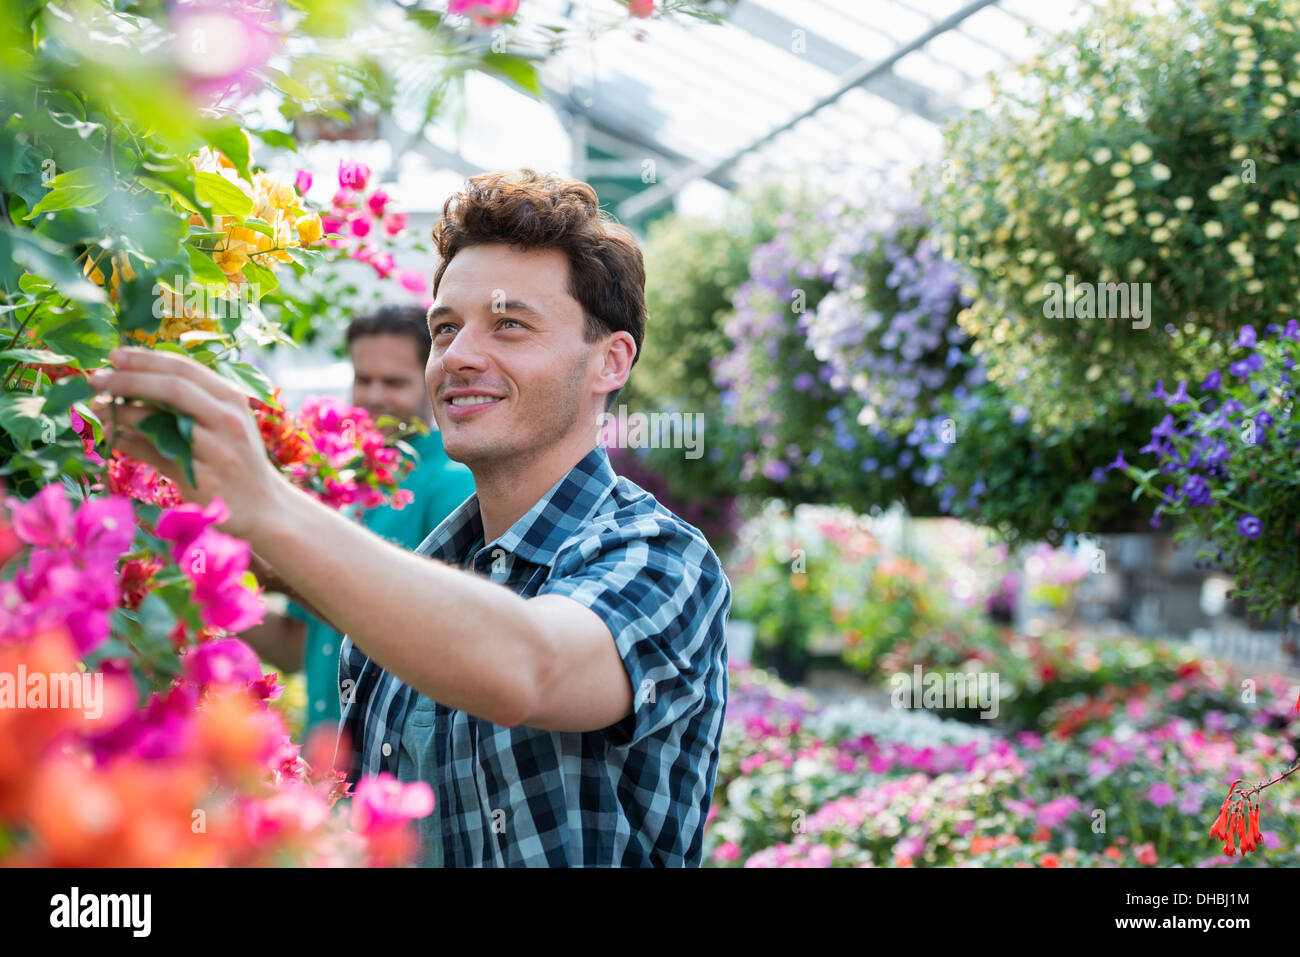 A greenhouse in a plant nursery growing organic flowers. Two men working, deadheading plants and checking hanging baskets. - Stock Image